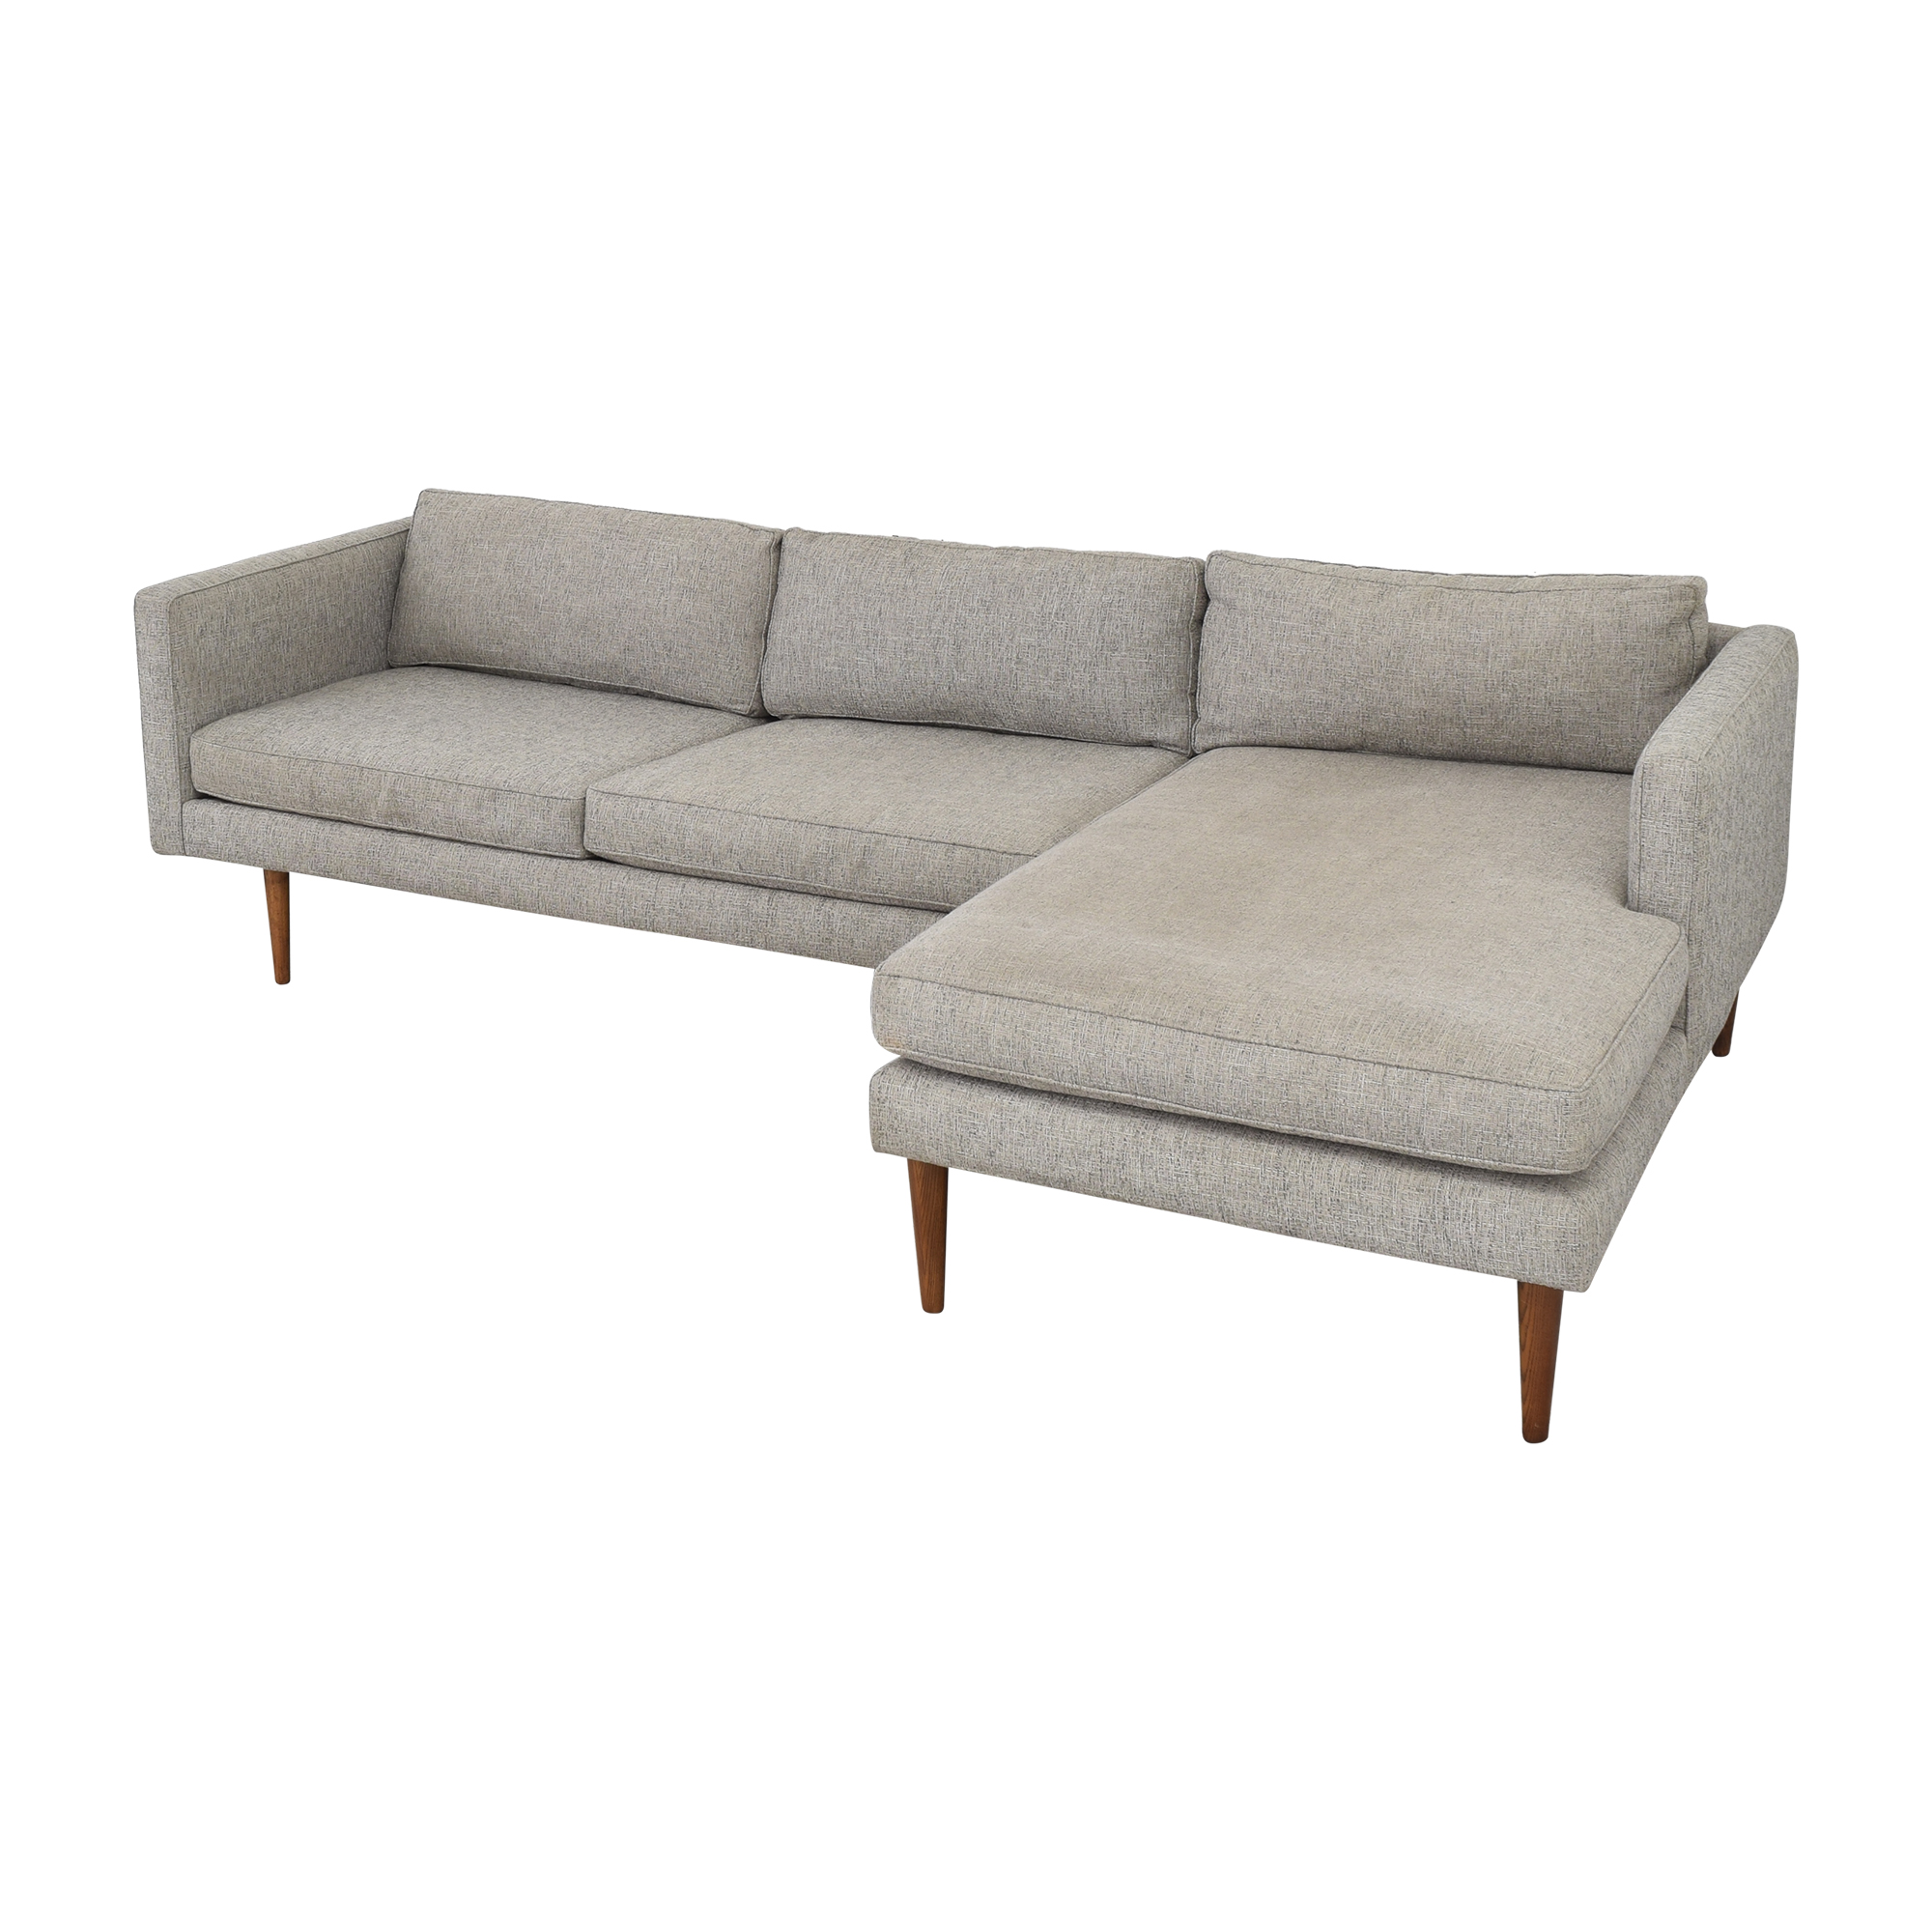 buy West Elm Sectional Sofa with Chaise West Elm Sofas